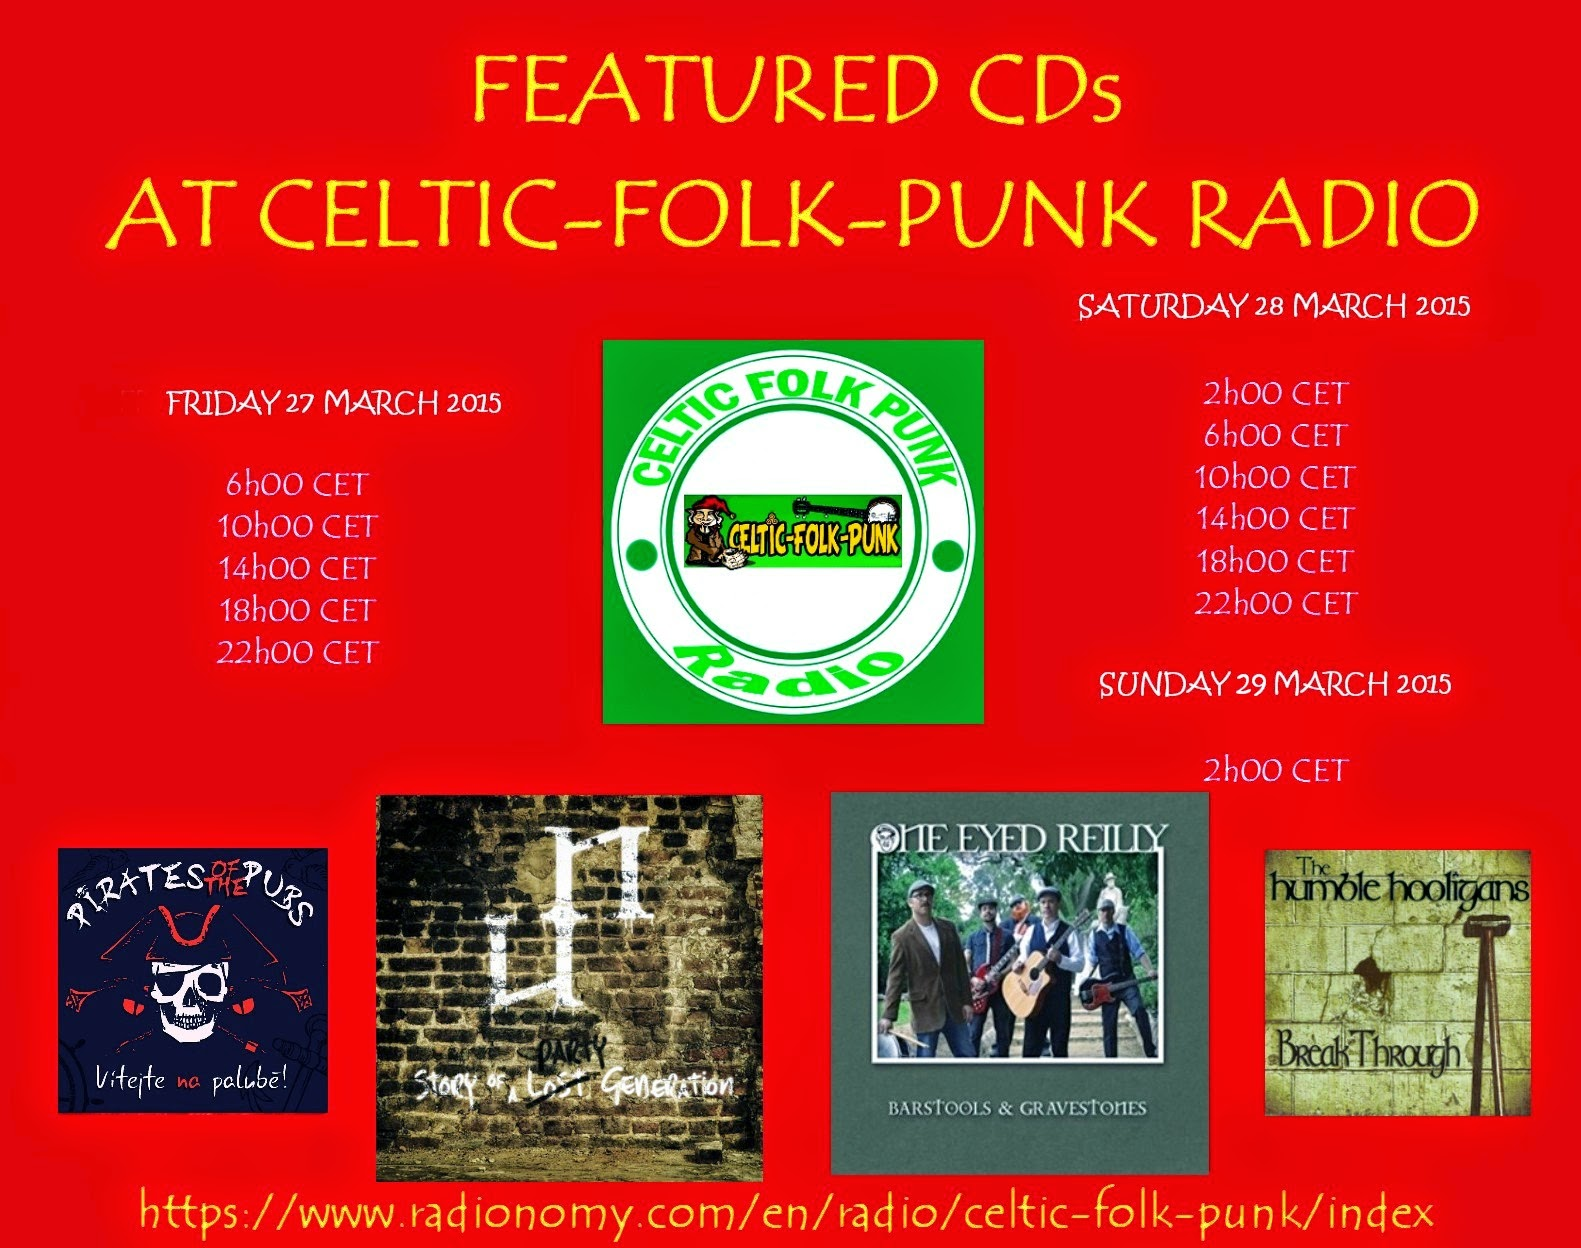 FEATURED ALBUMS AT CELTIC-FOLK-PUNK RADIO (27-28 MARCH ...